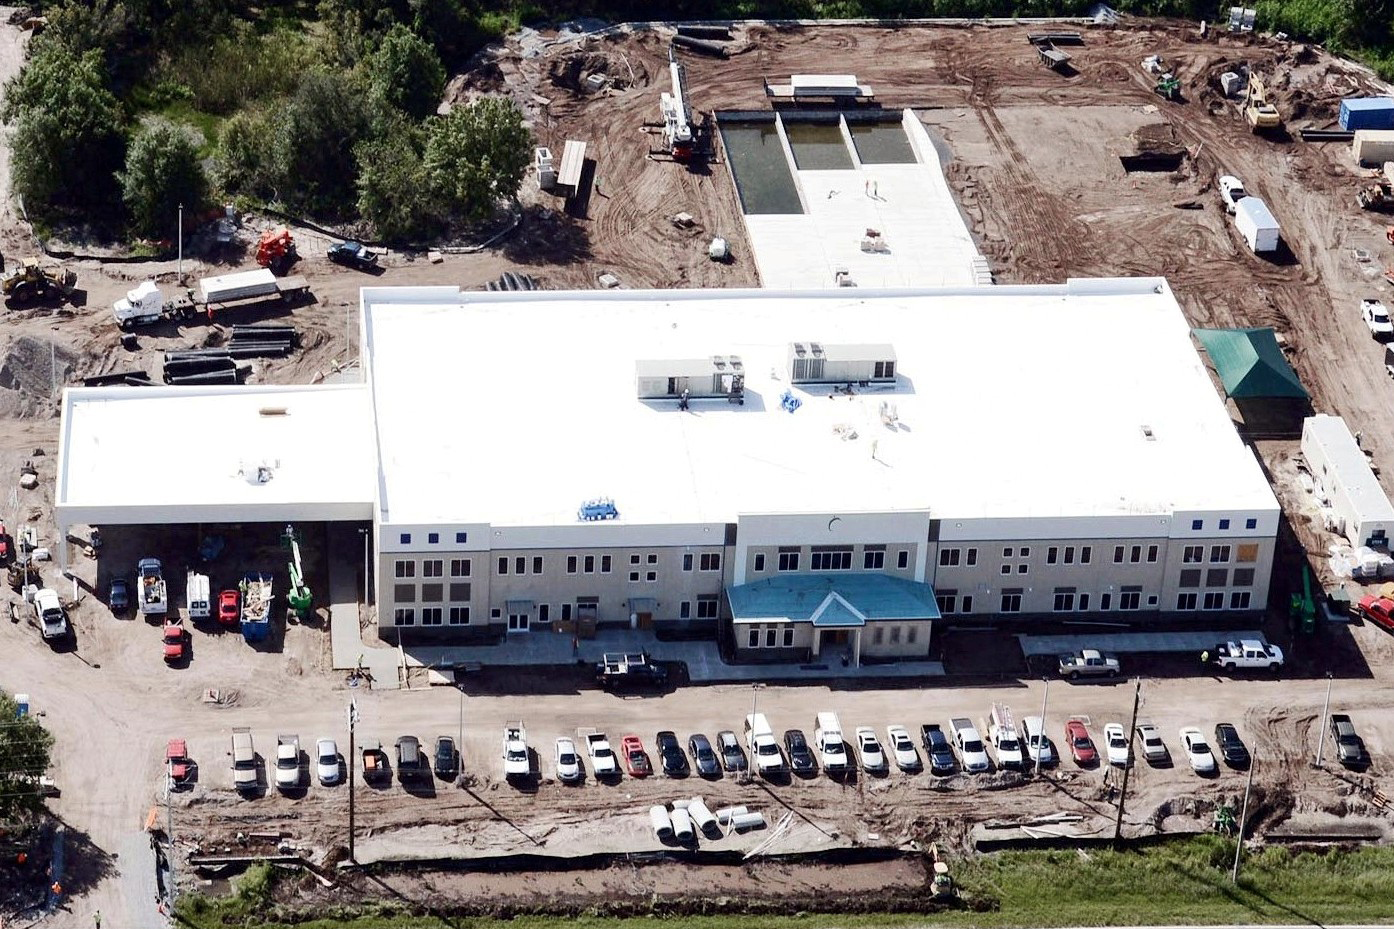 New Charter School To Open In Riverview Next Week The Observer News South Shore Riverview Sun City Center